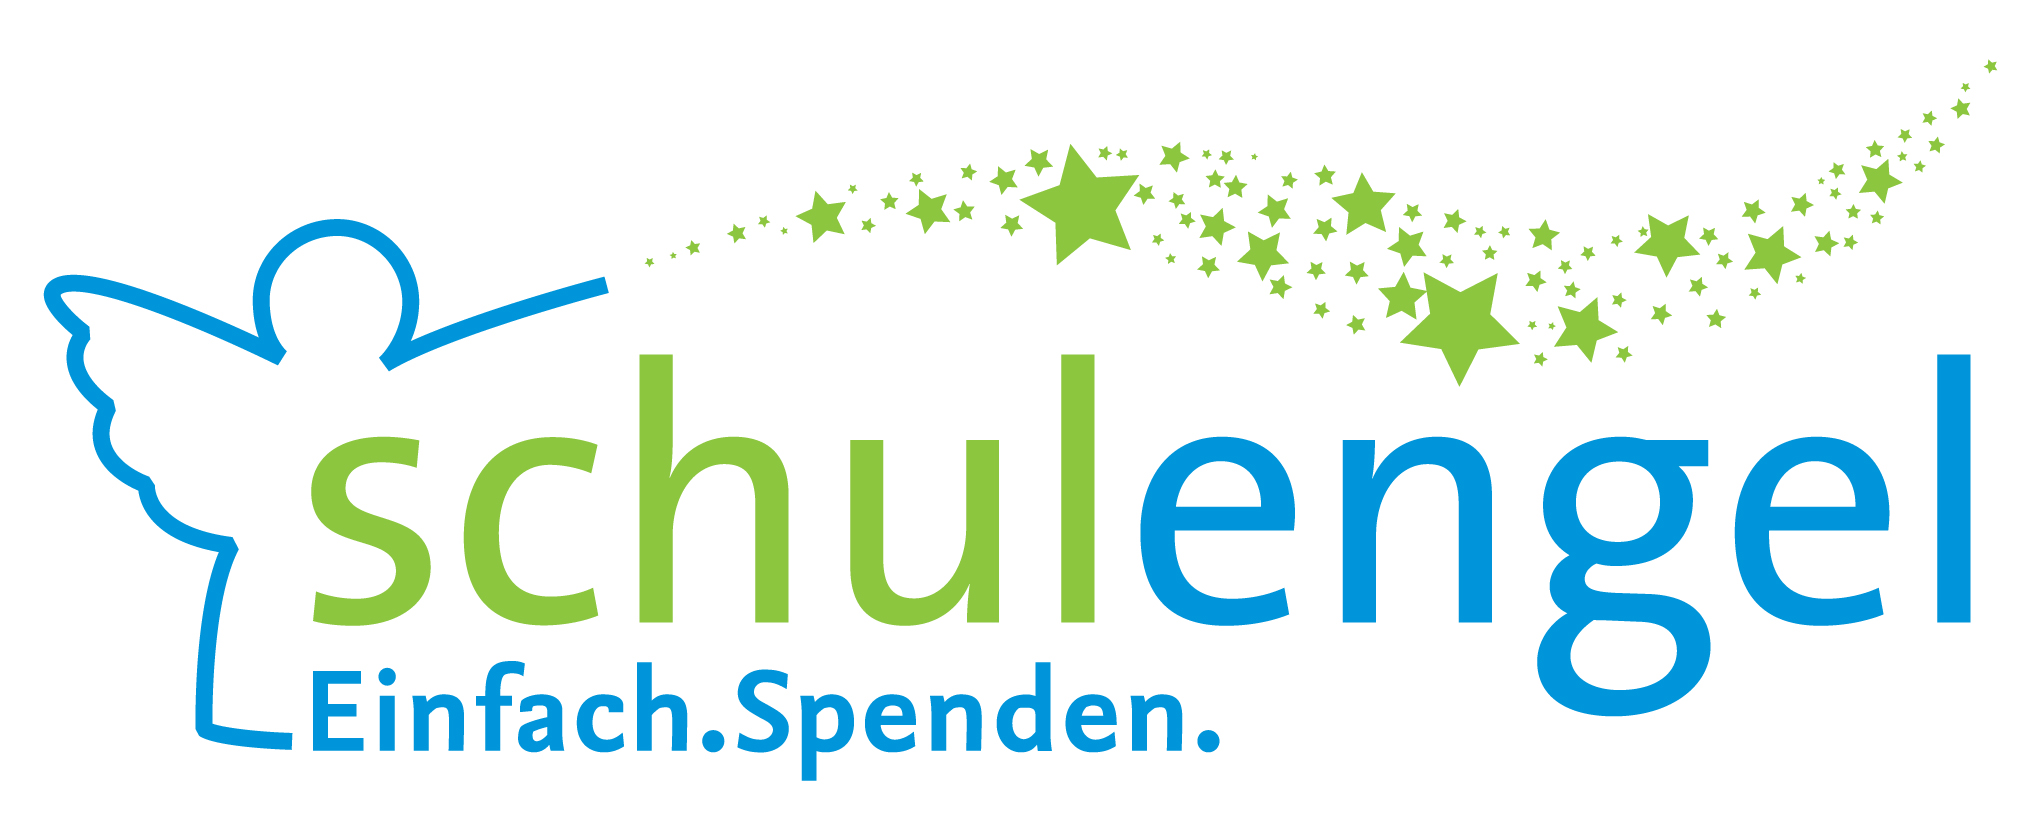 https://d24ag7nj5p7ypp.cloudfront.net/v20140929/cms/fileadmin/Schulengel-Downloads/Schulengel-Logo-JPG.jpg